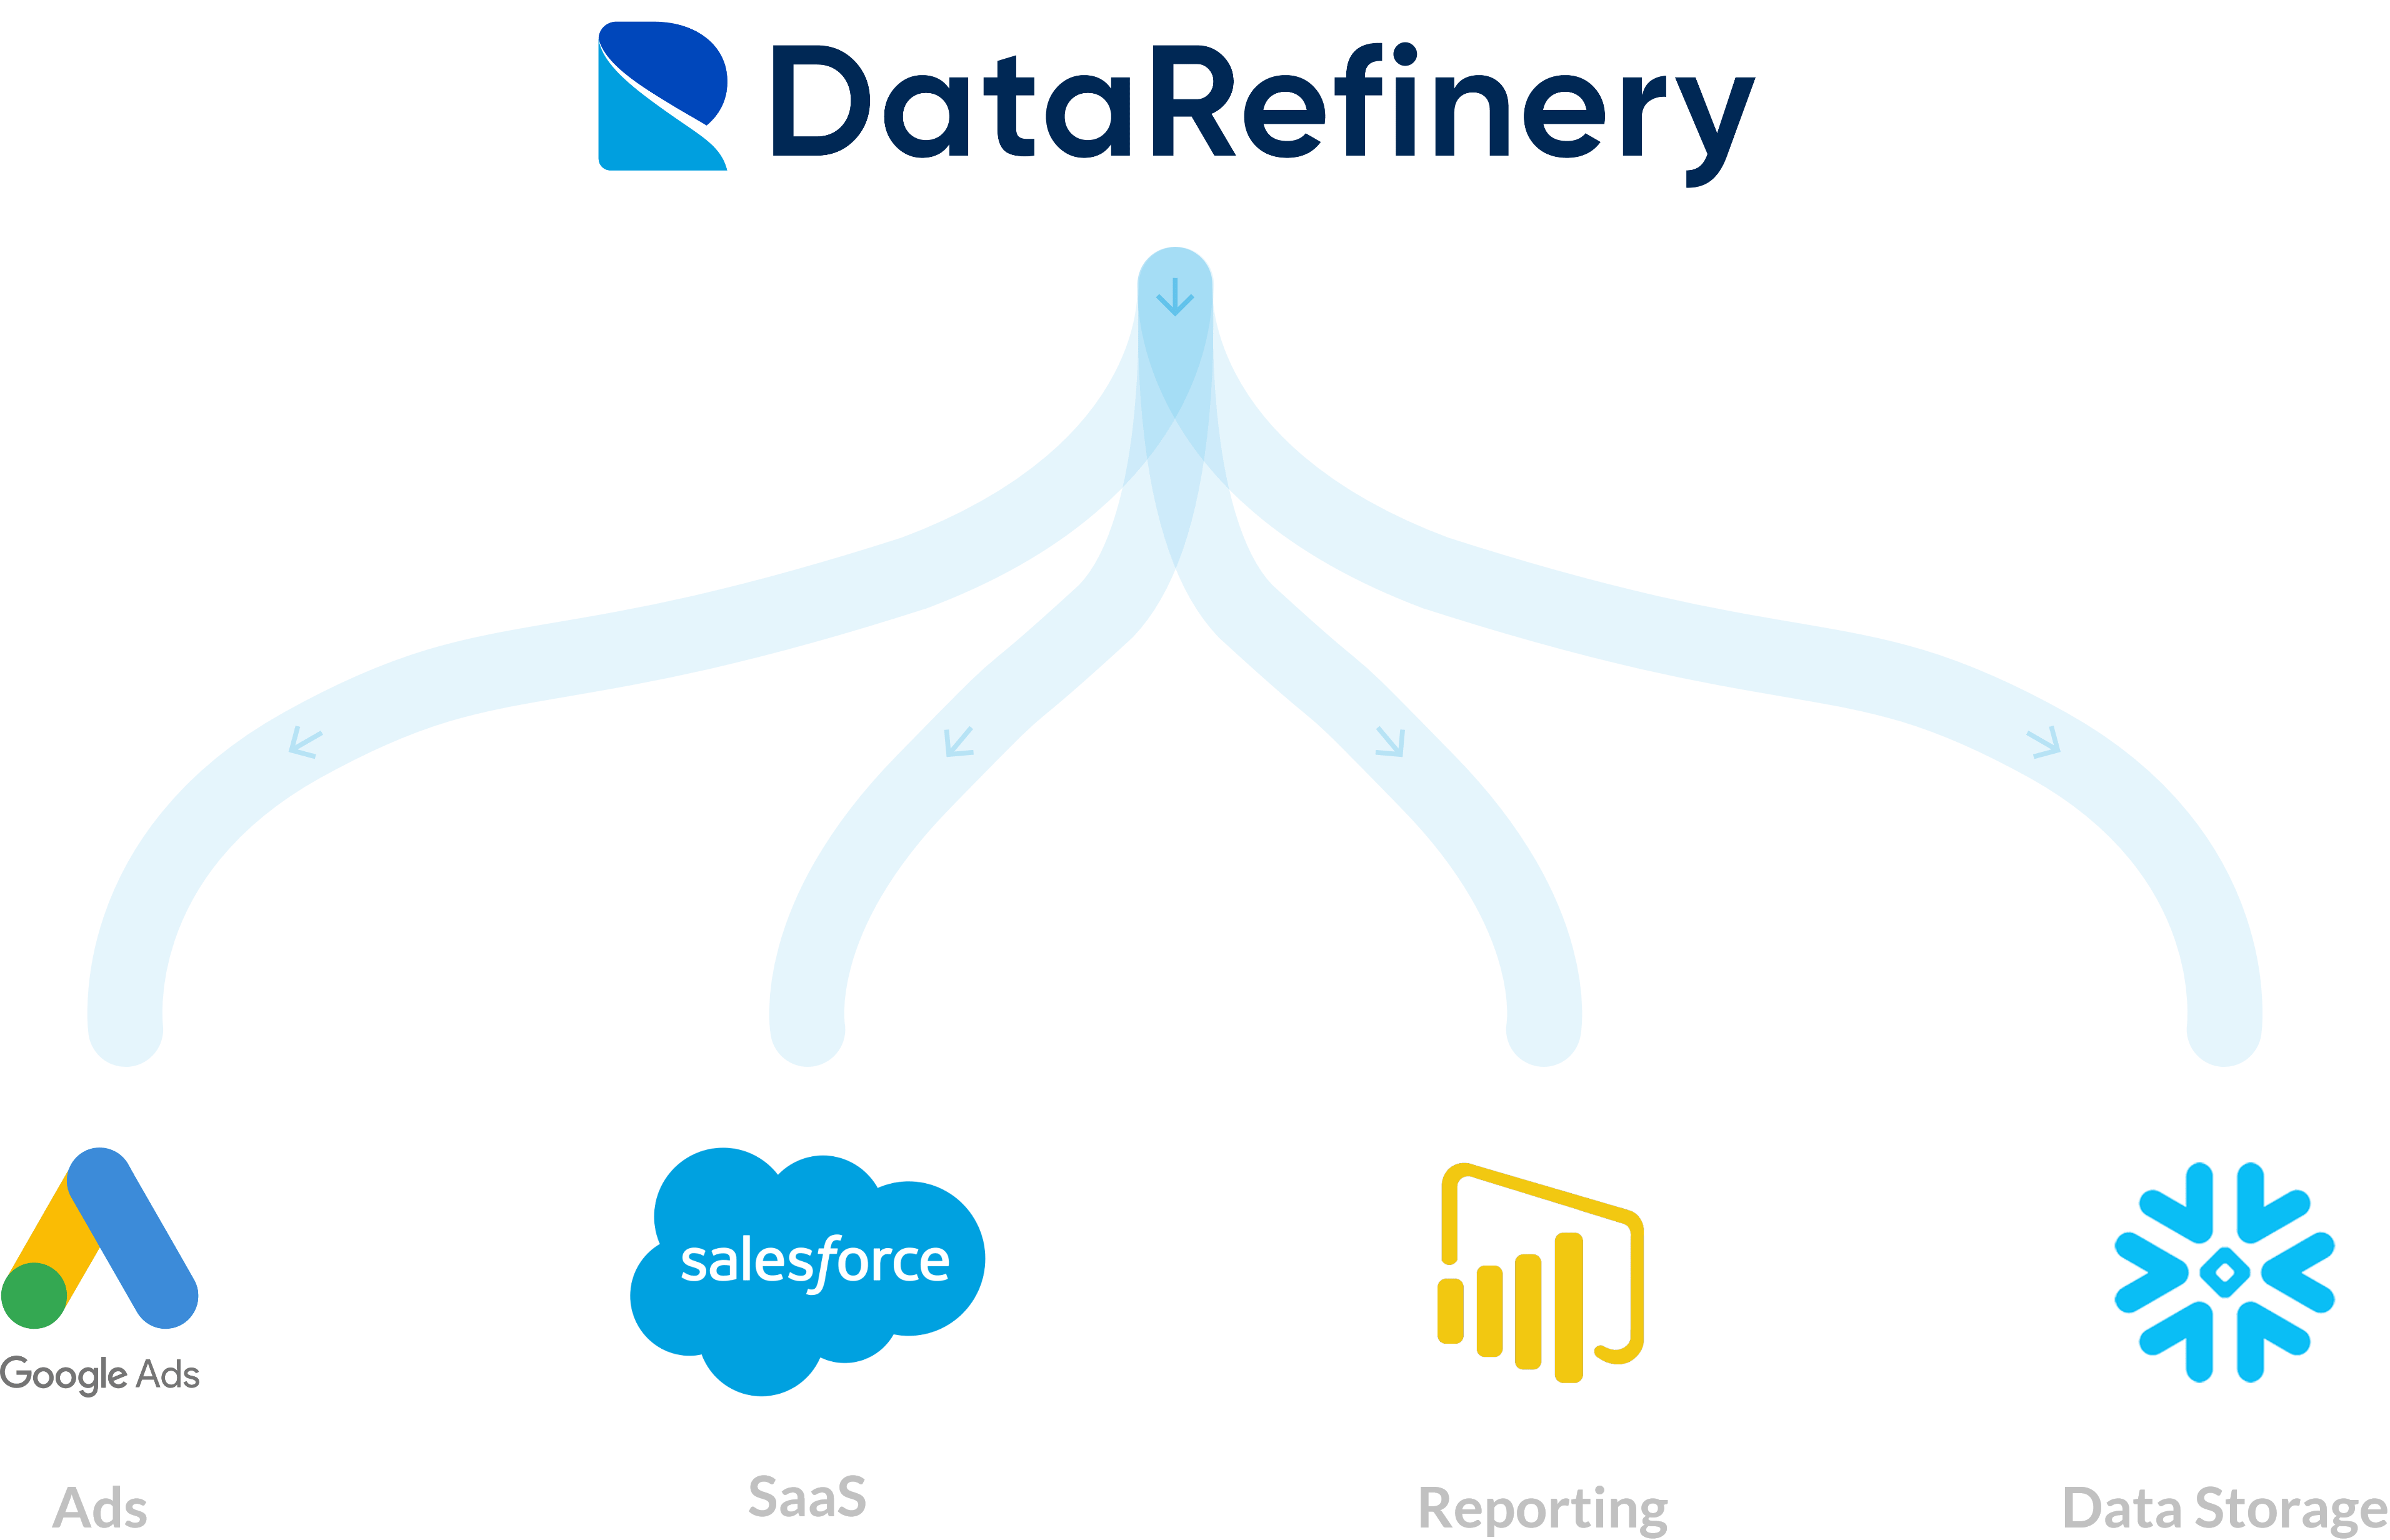 Diagram showing data moving from The Data Refinery to destinations such as ad platforms, SaaS products, reporting tools, and data storage locations